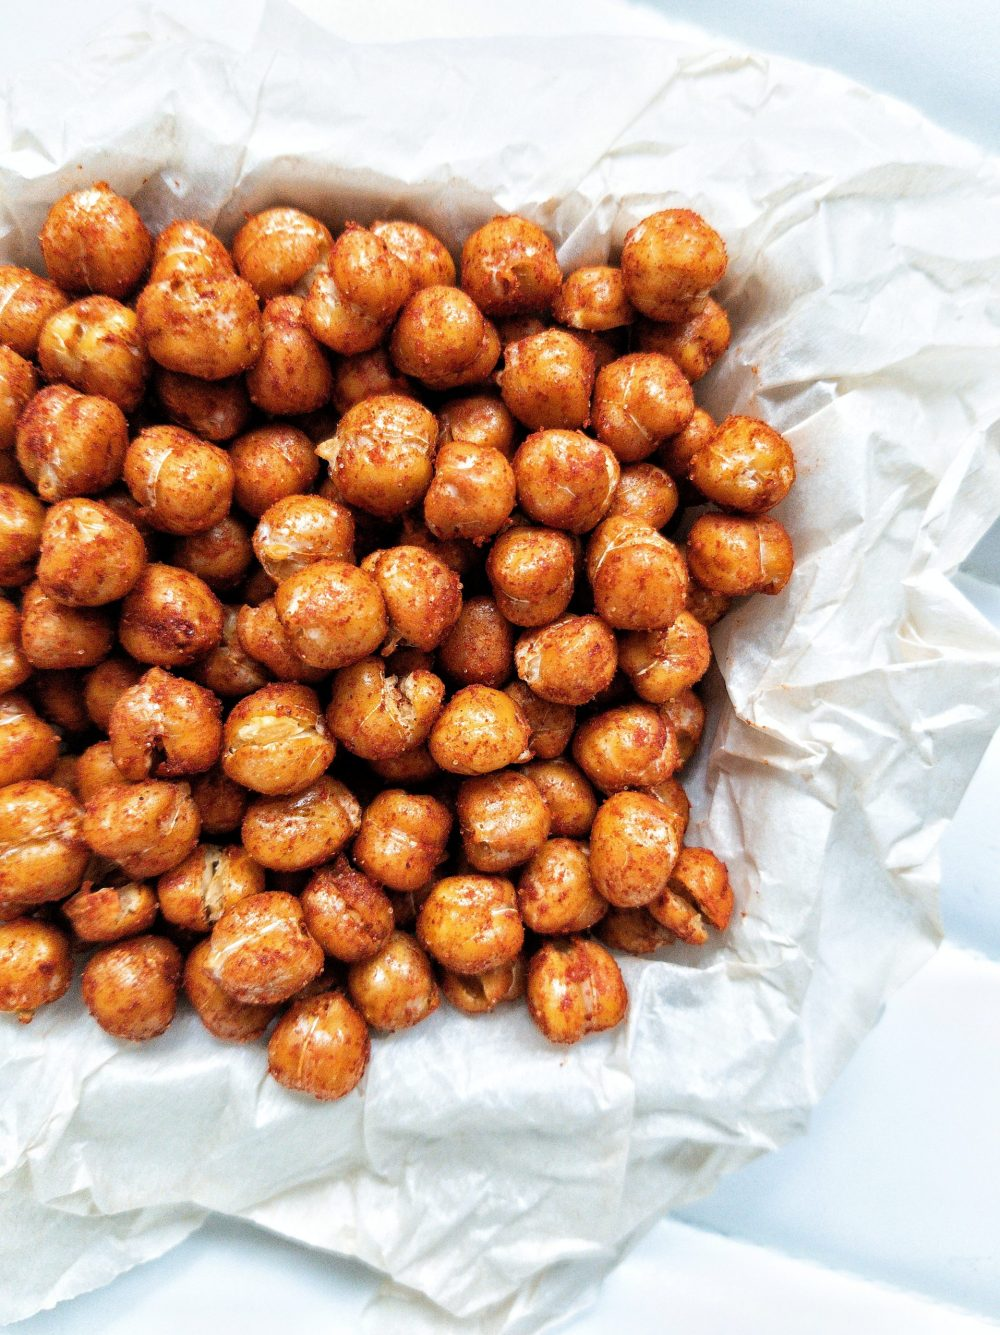 Roasted chickpeas with smoked paprika on top of parchment paper